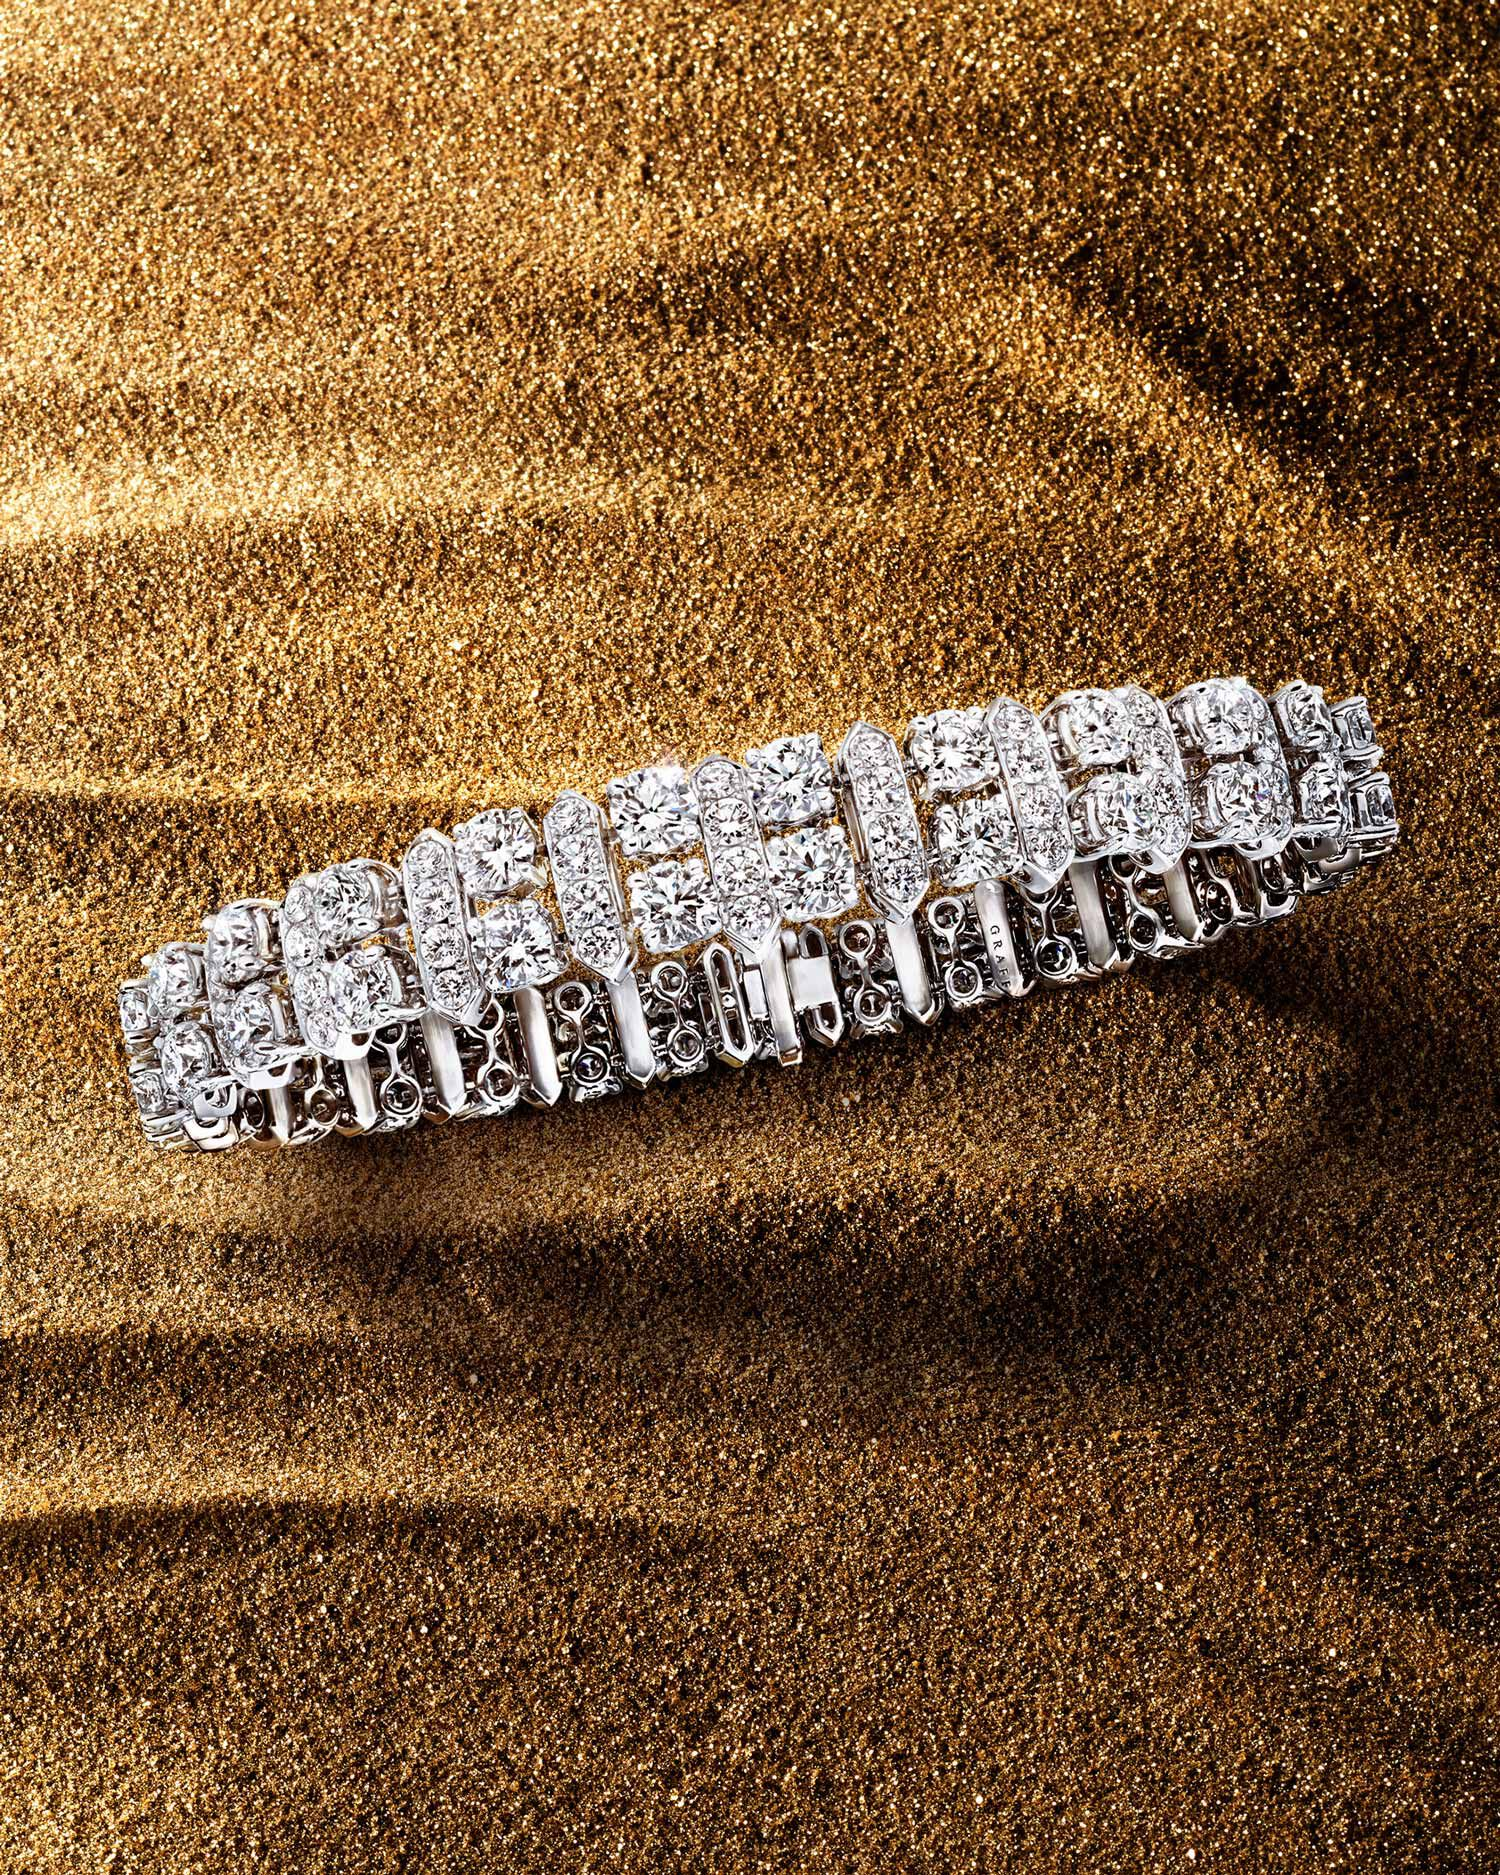 Diamond Night Moon high jewellery bracelet from the Graff Tribal collection